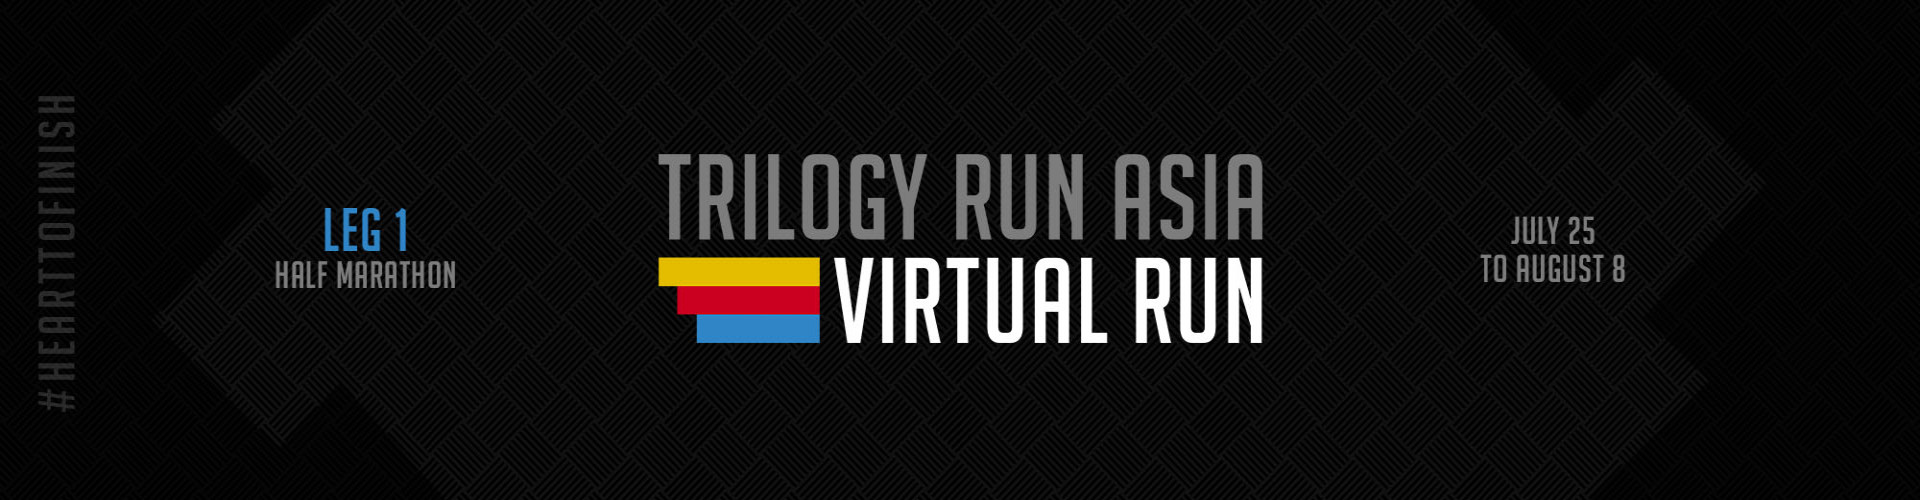 TRILOGY RUN ASIA 2020 Leg 1 VIRTUAL RUN